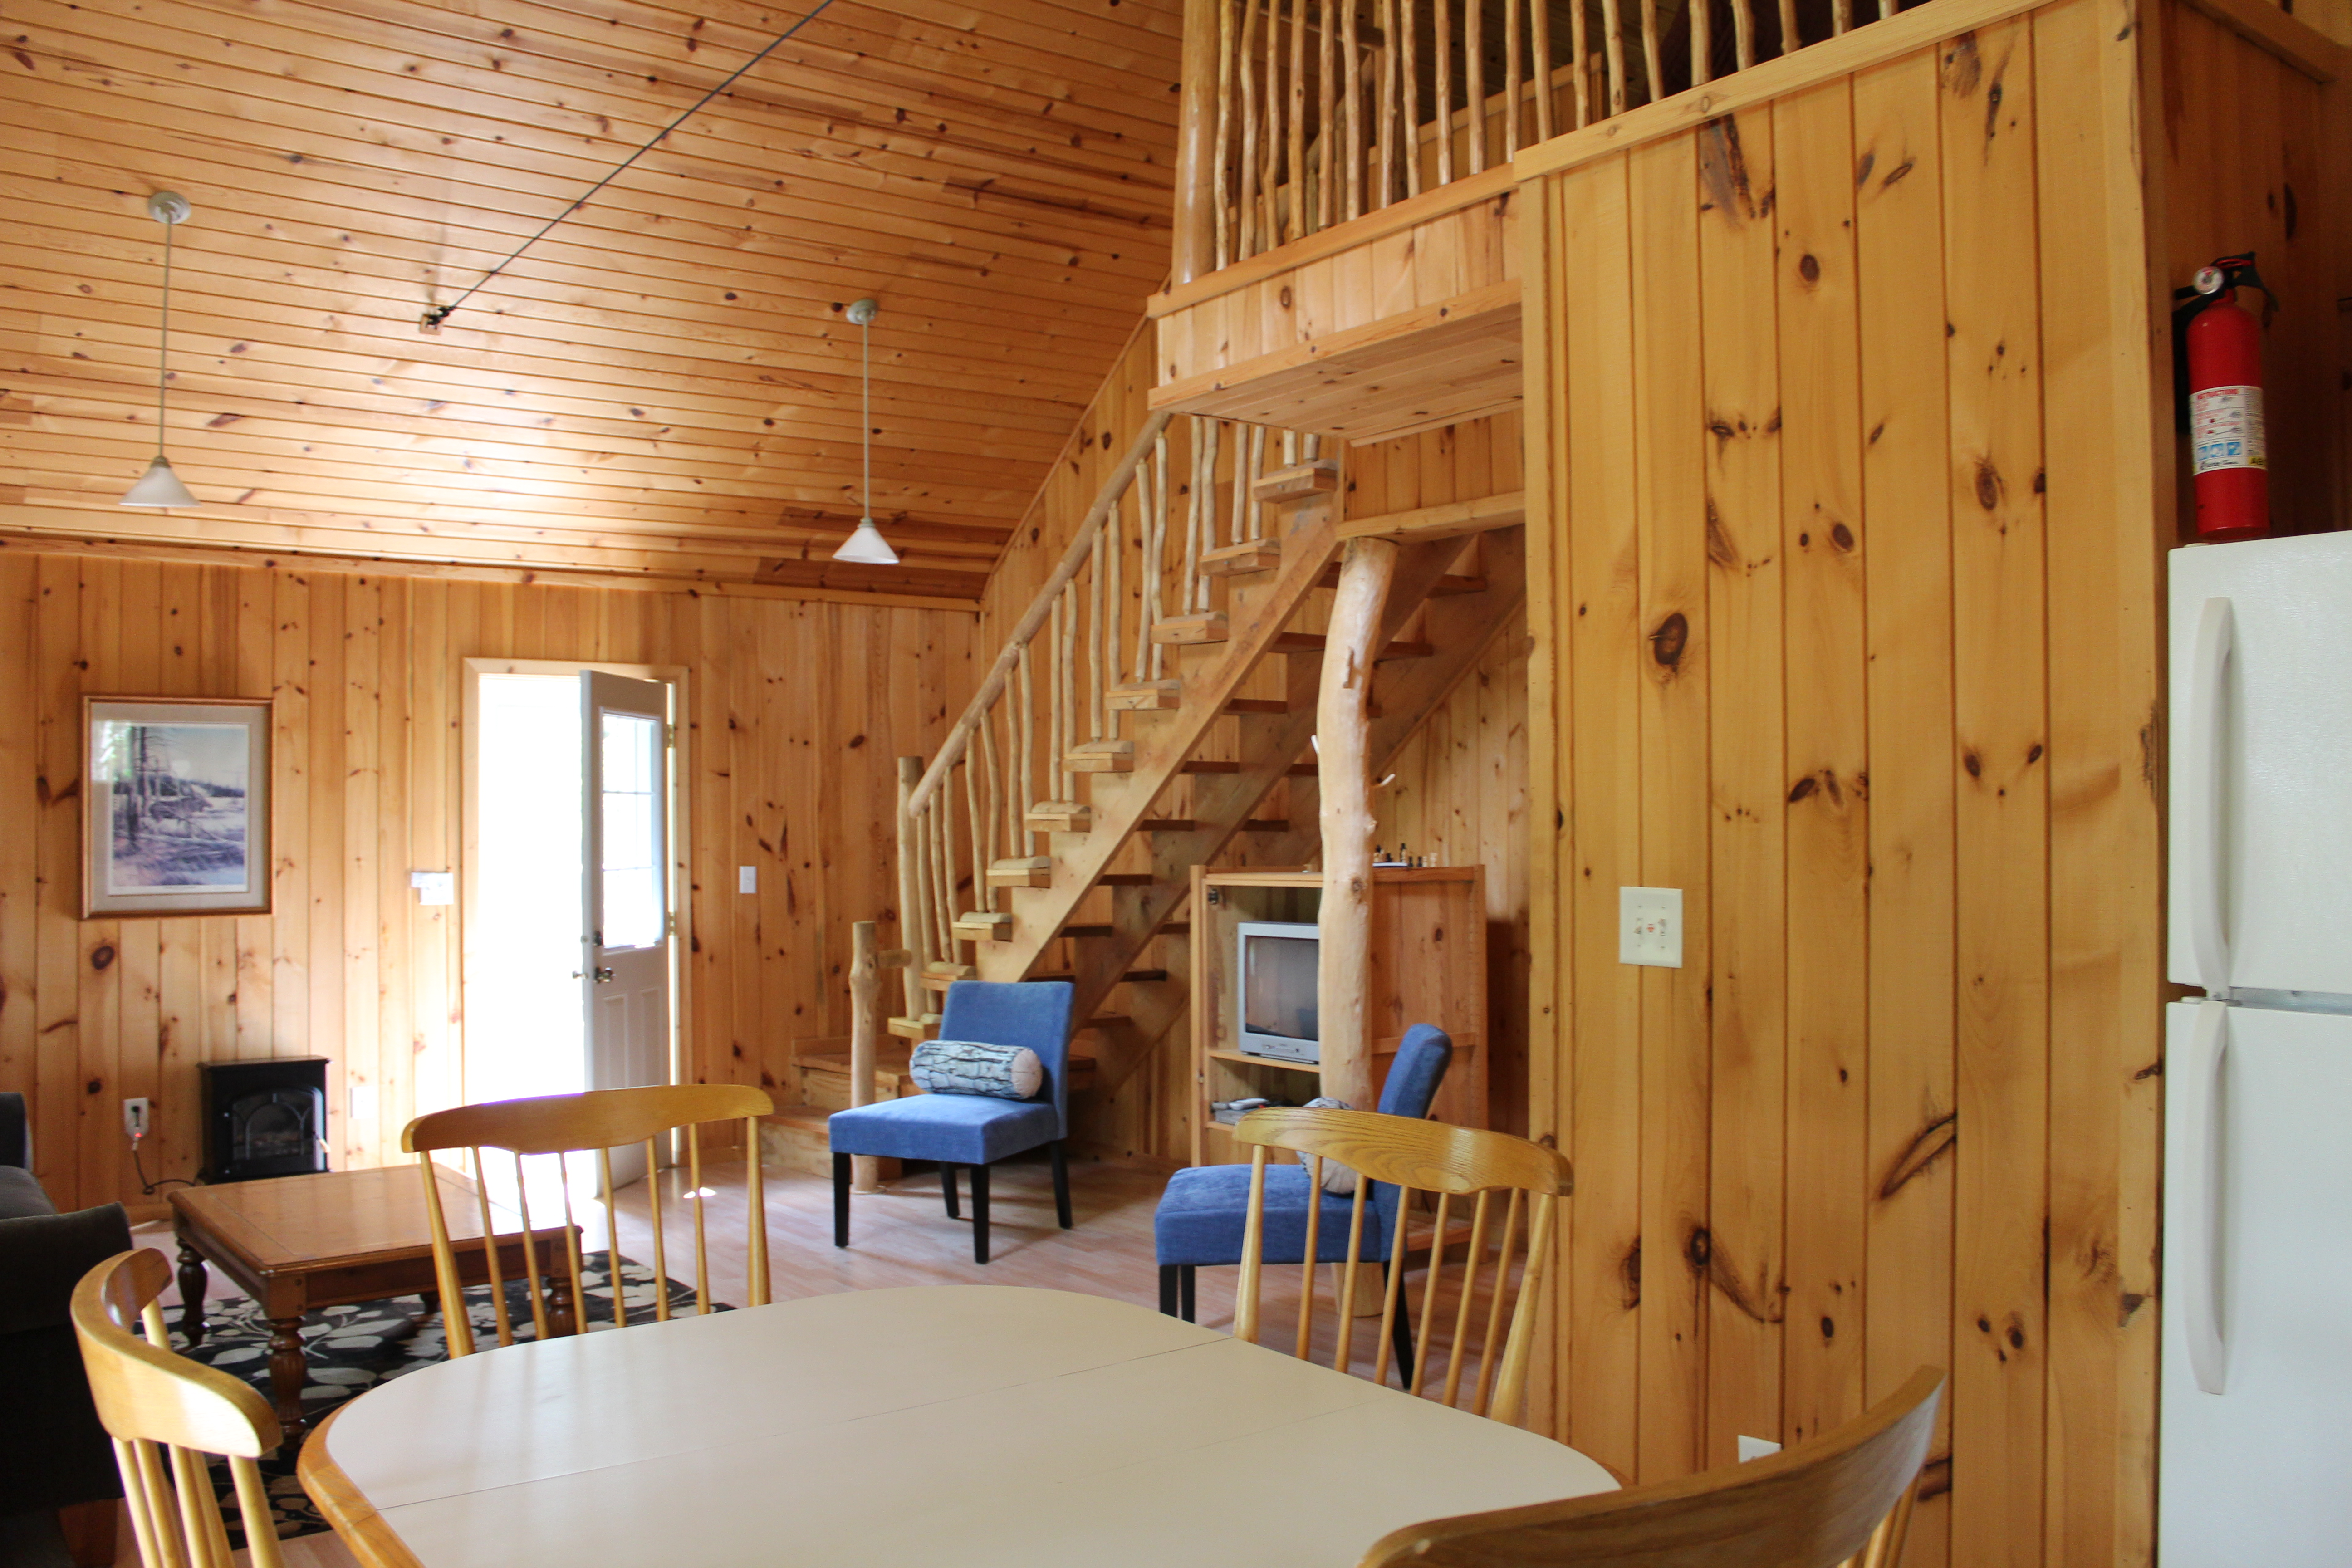 top residential basic cabins by houses of builders ohio tree luxury treehouse treehouses in